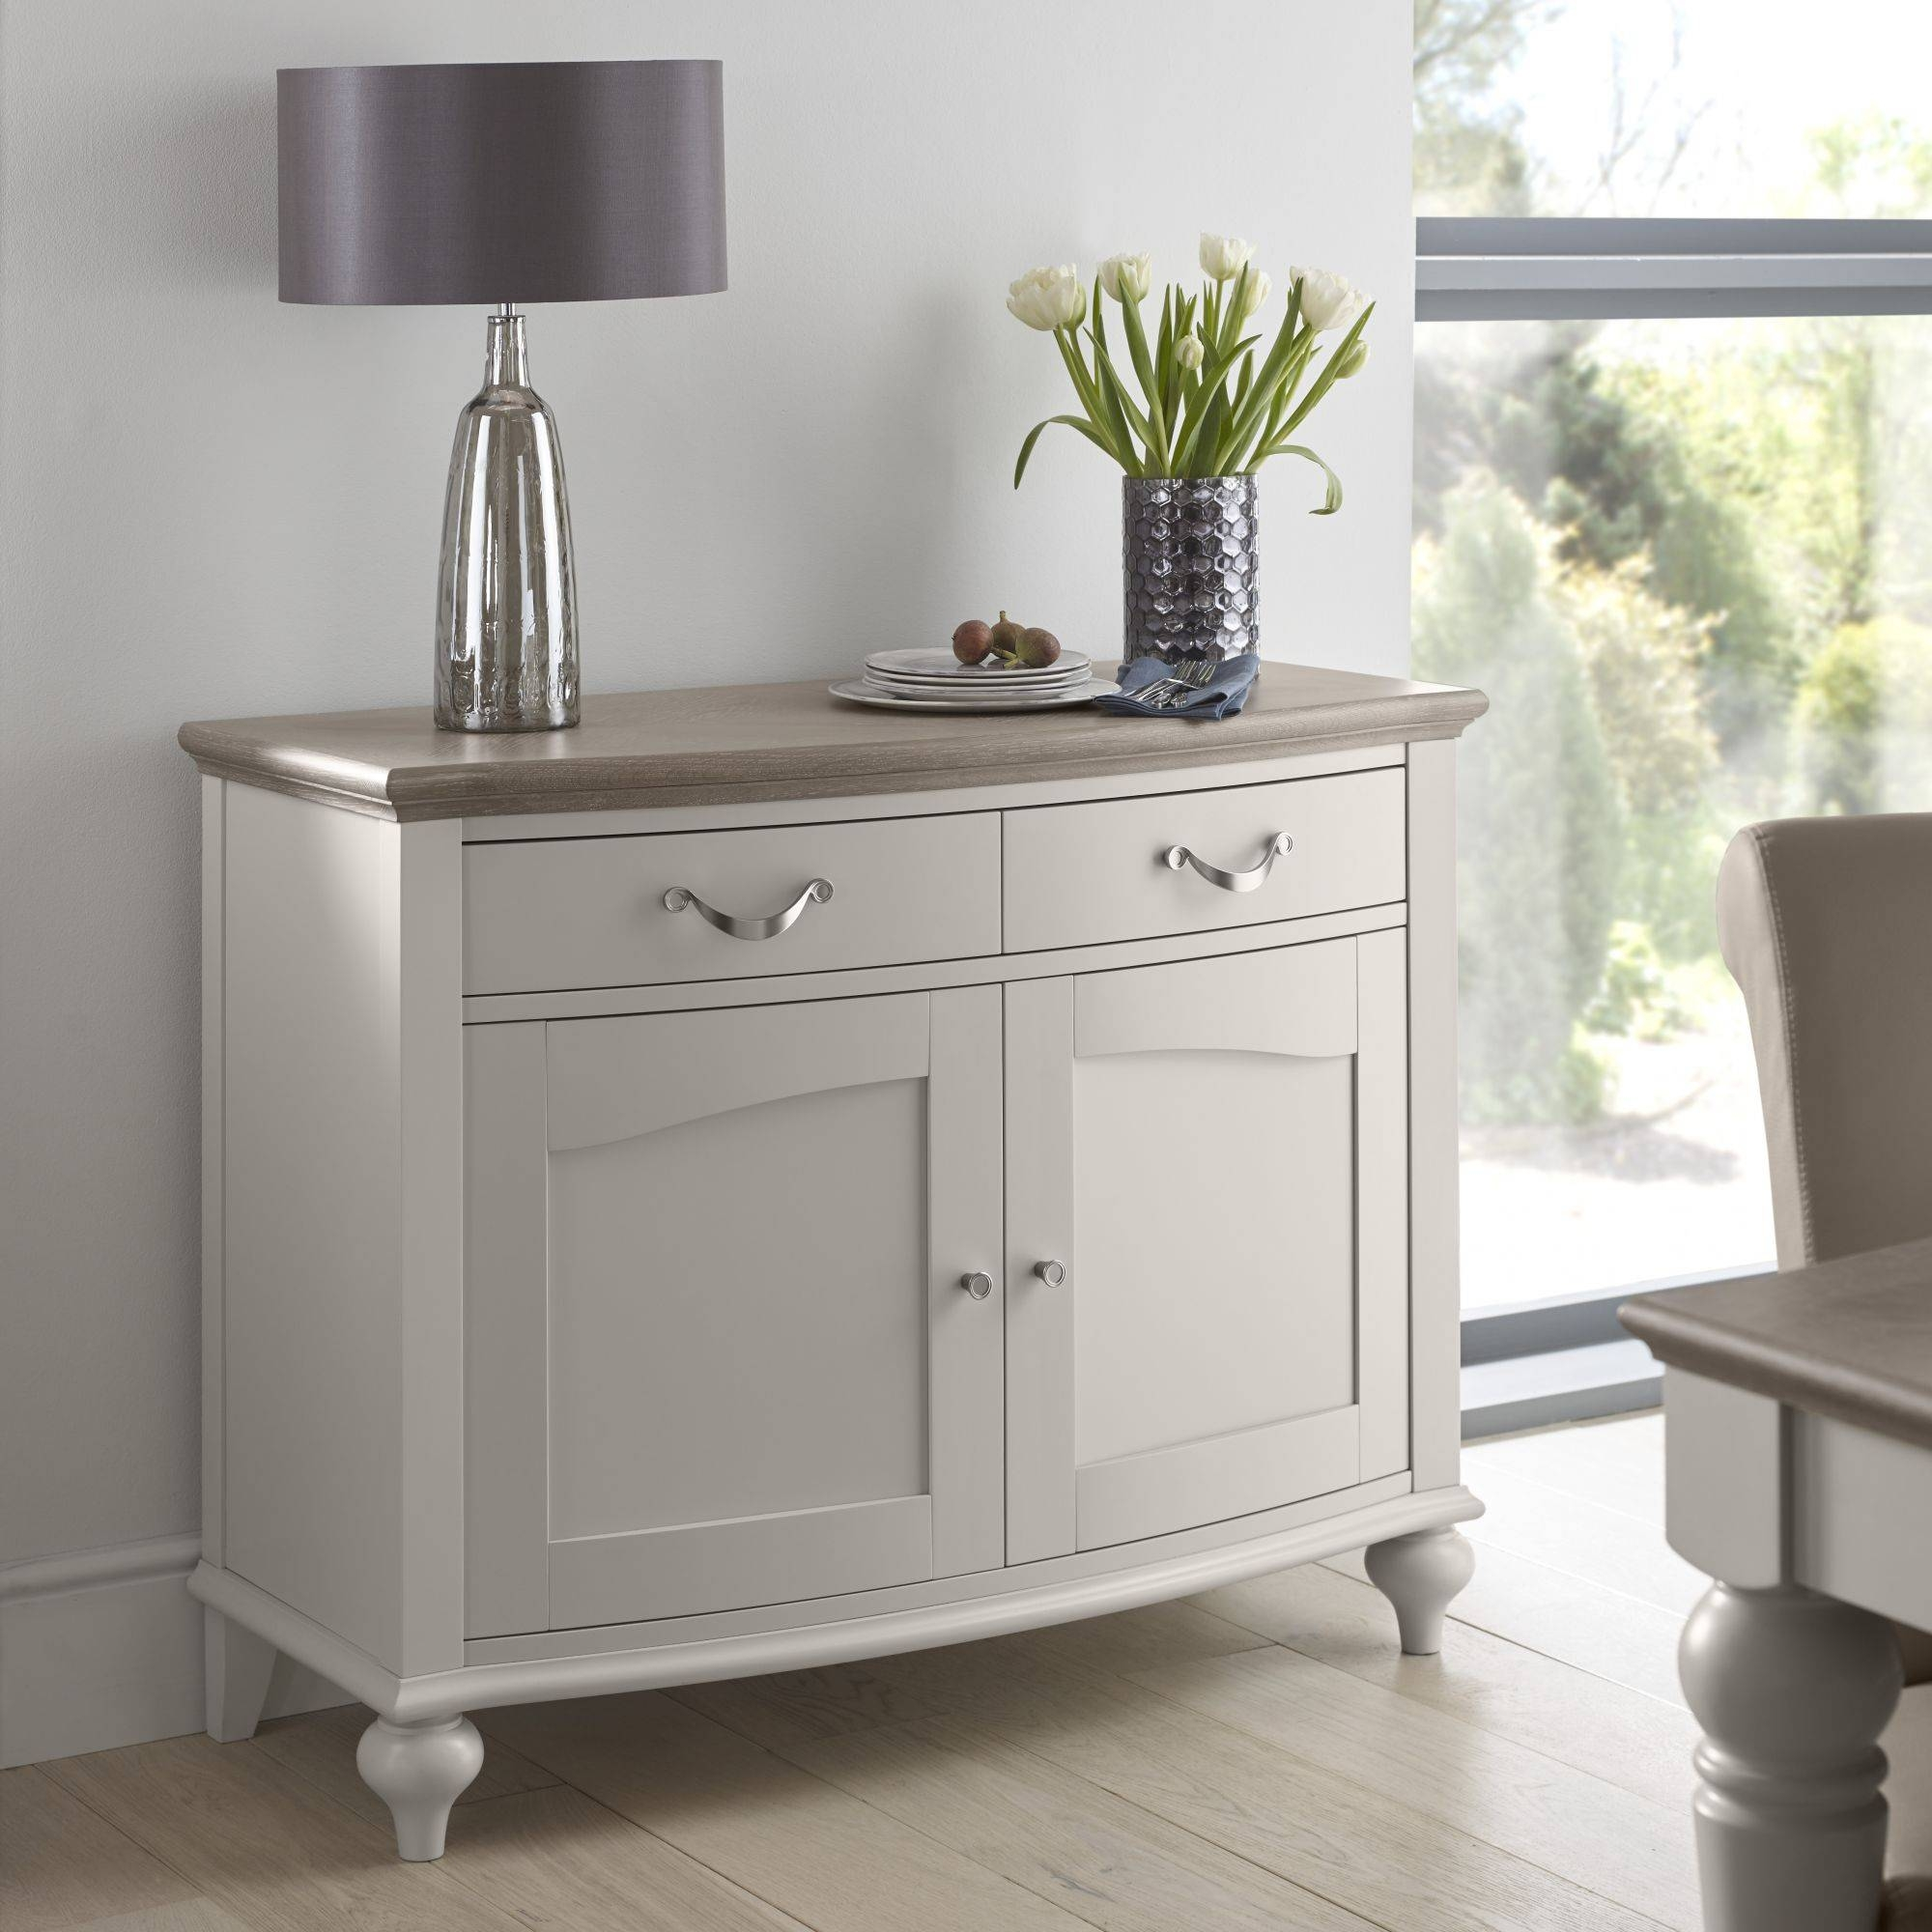 Tuscany Grey Washed Oak & Soft Grey Narrow Sideboard within Tuscany Sideboards (Image 21 of 30)